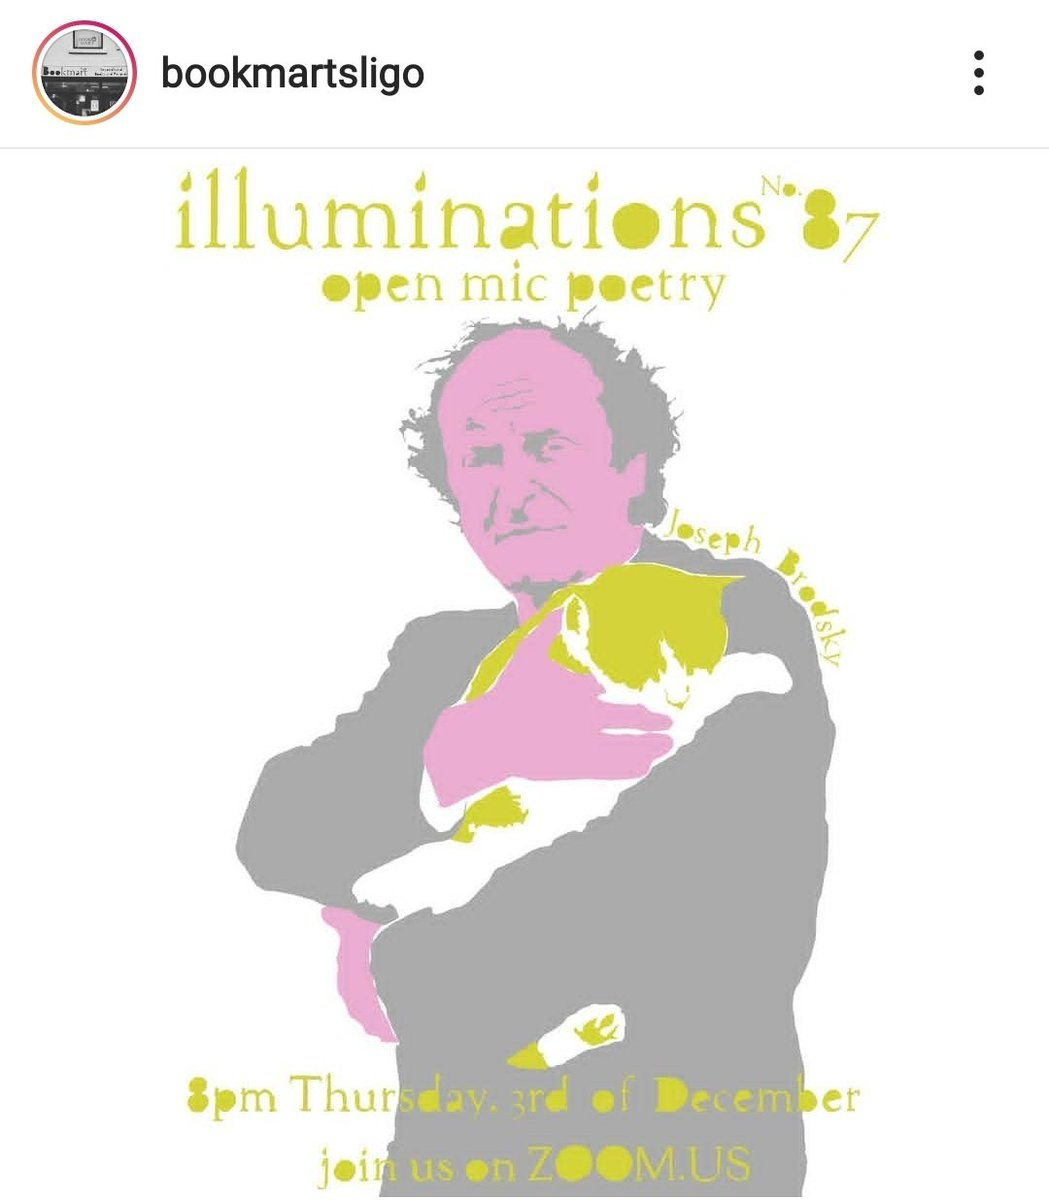 Open Mic poetry Zoom event coming up in #Sligo #December 3rd See below tweet for contact details. Bookmart on Instagram not on twitter (or can't see if they are)  https://t.co/EBLDaQvXDw #OpenMic #poetrycommunity #Poetryin13 #virtualpoetry #SpokenWord https://t.co/DMvd5RLeMe